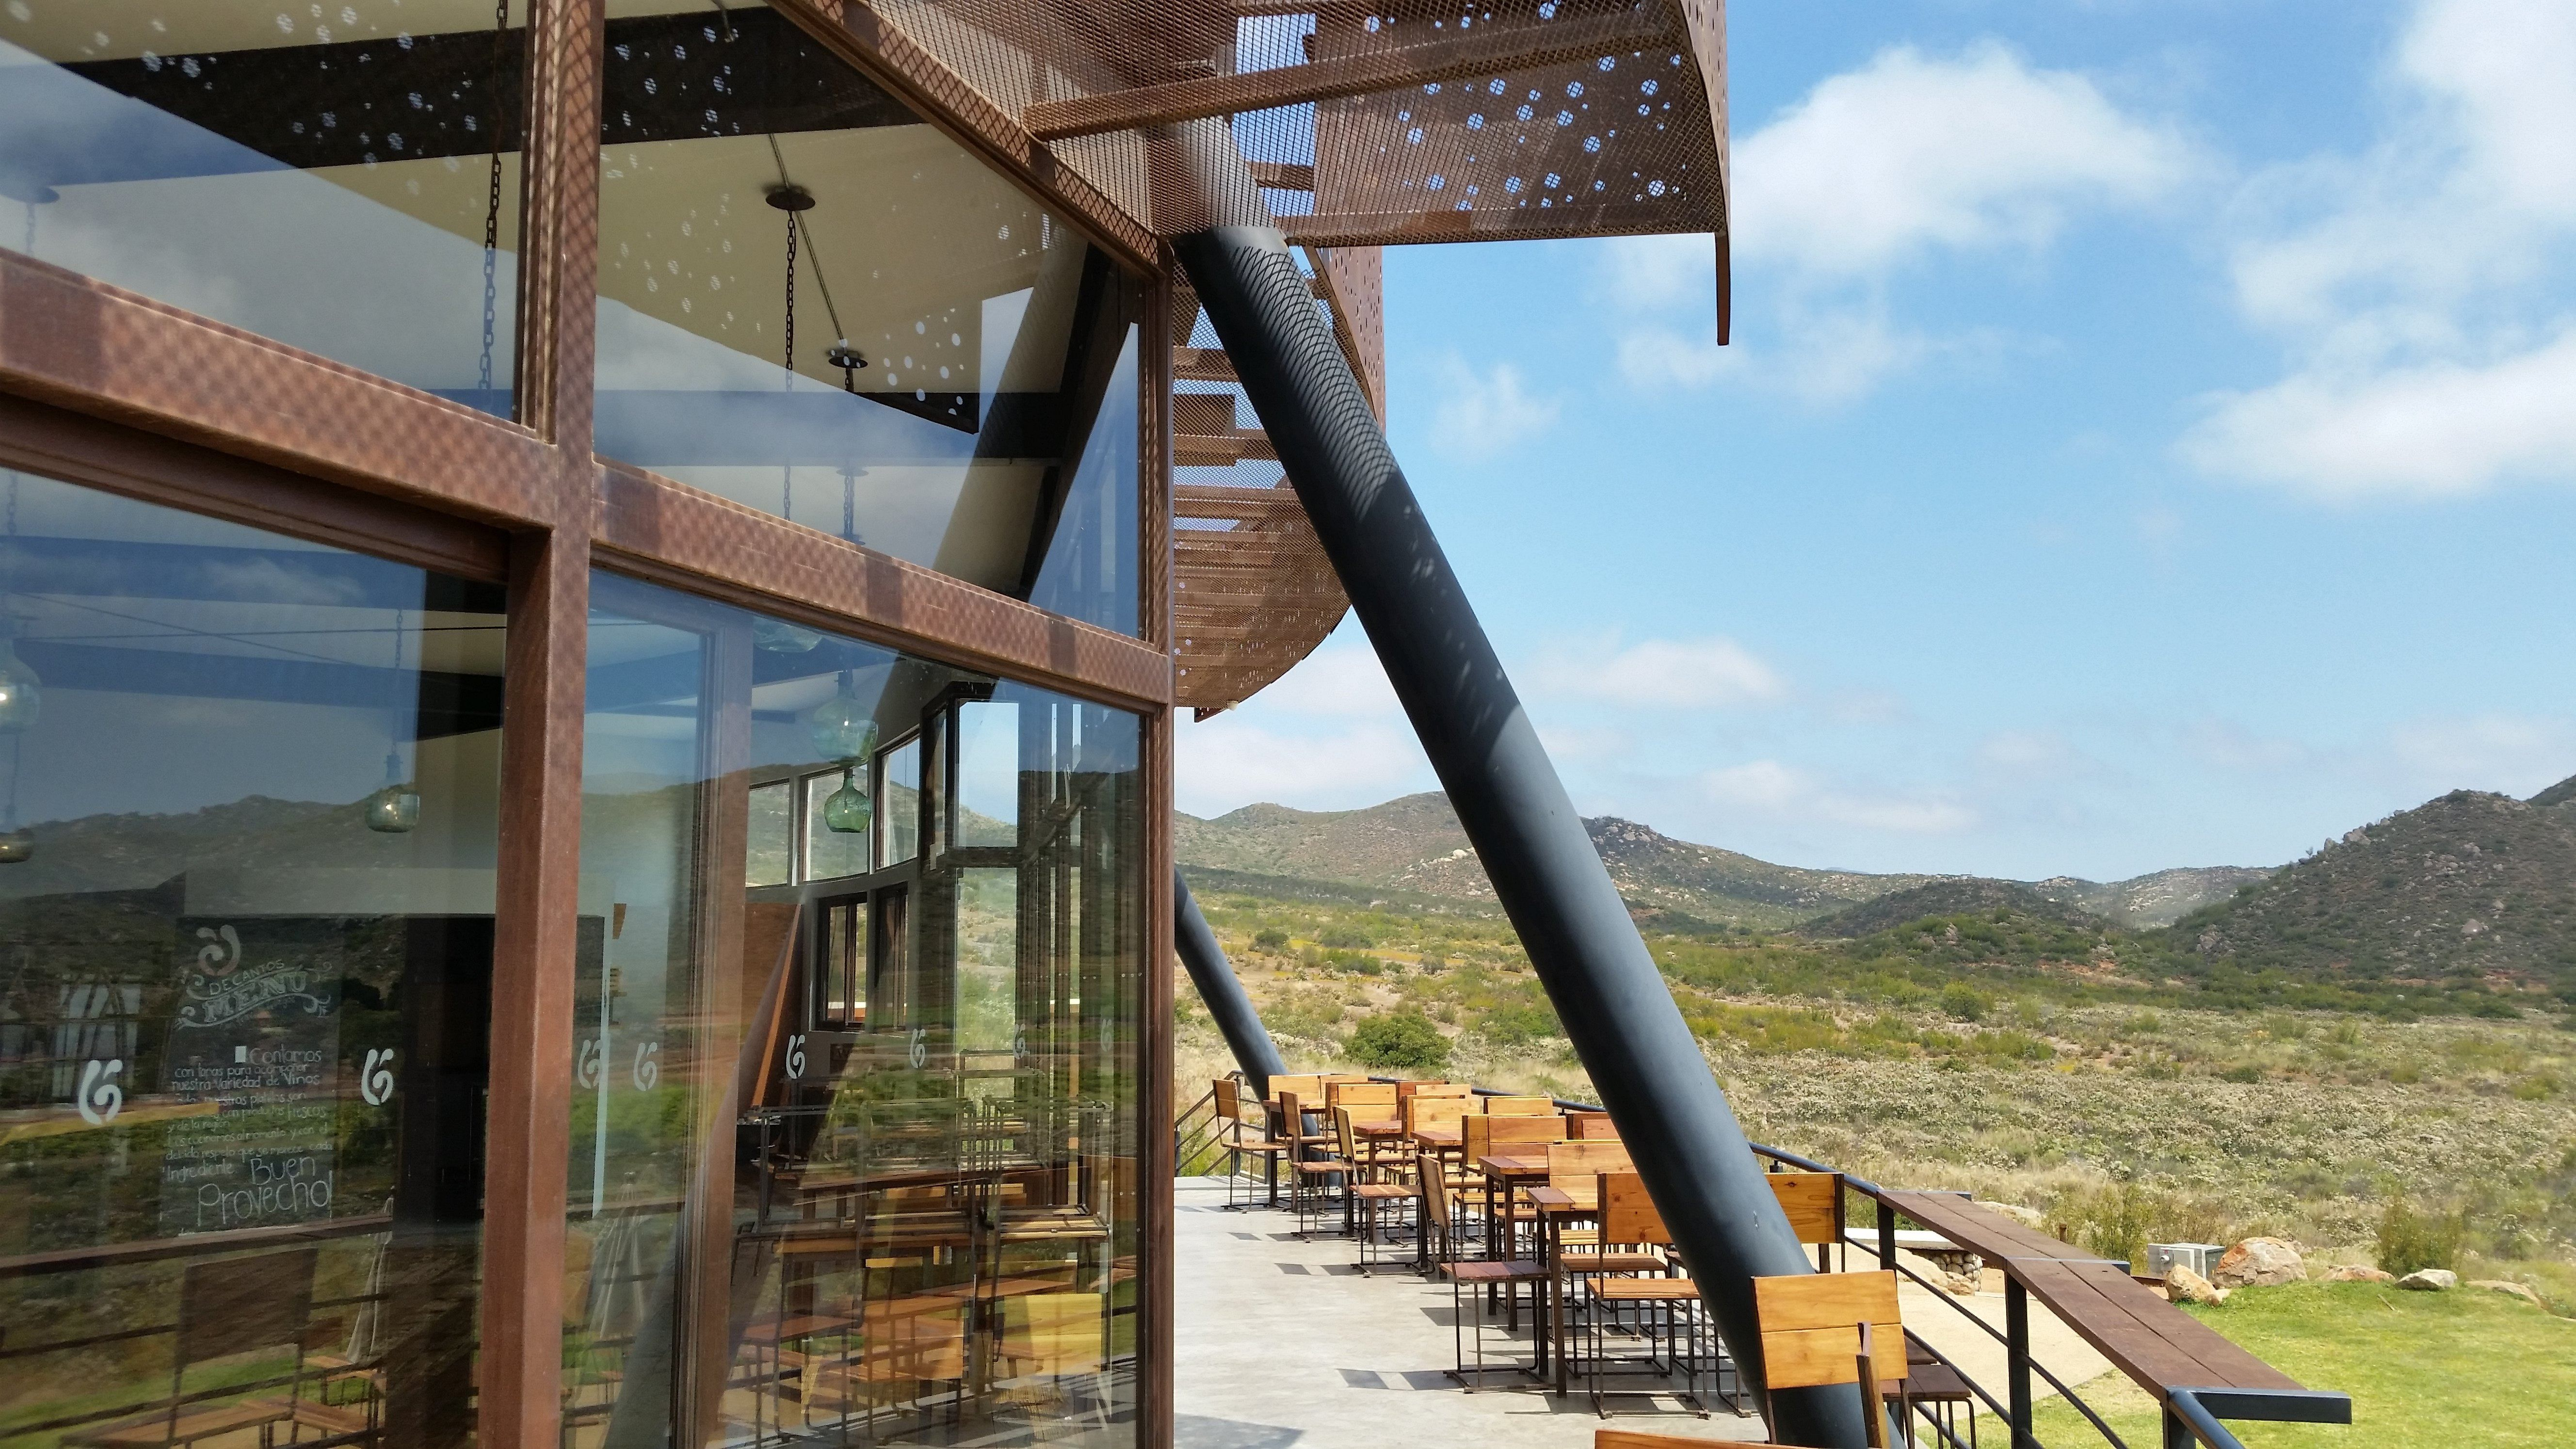 Decantos Vinícola in Baja California, a Contemporary Winery in a Rustic Setting